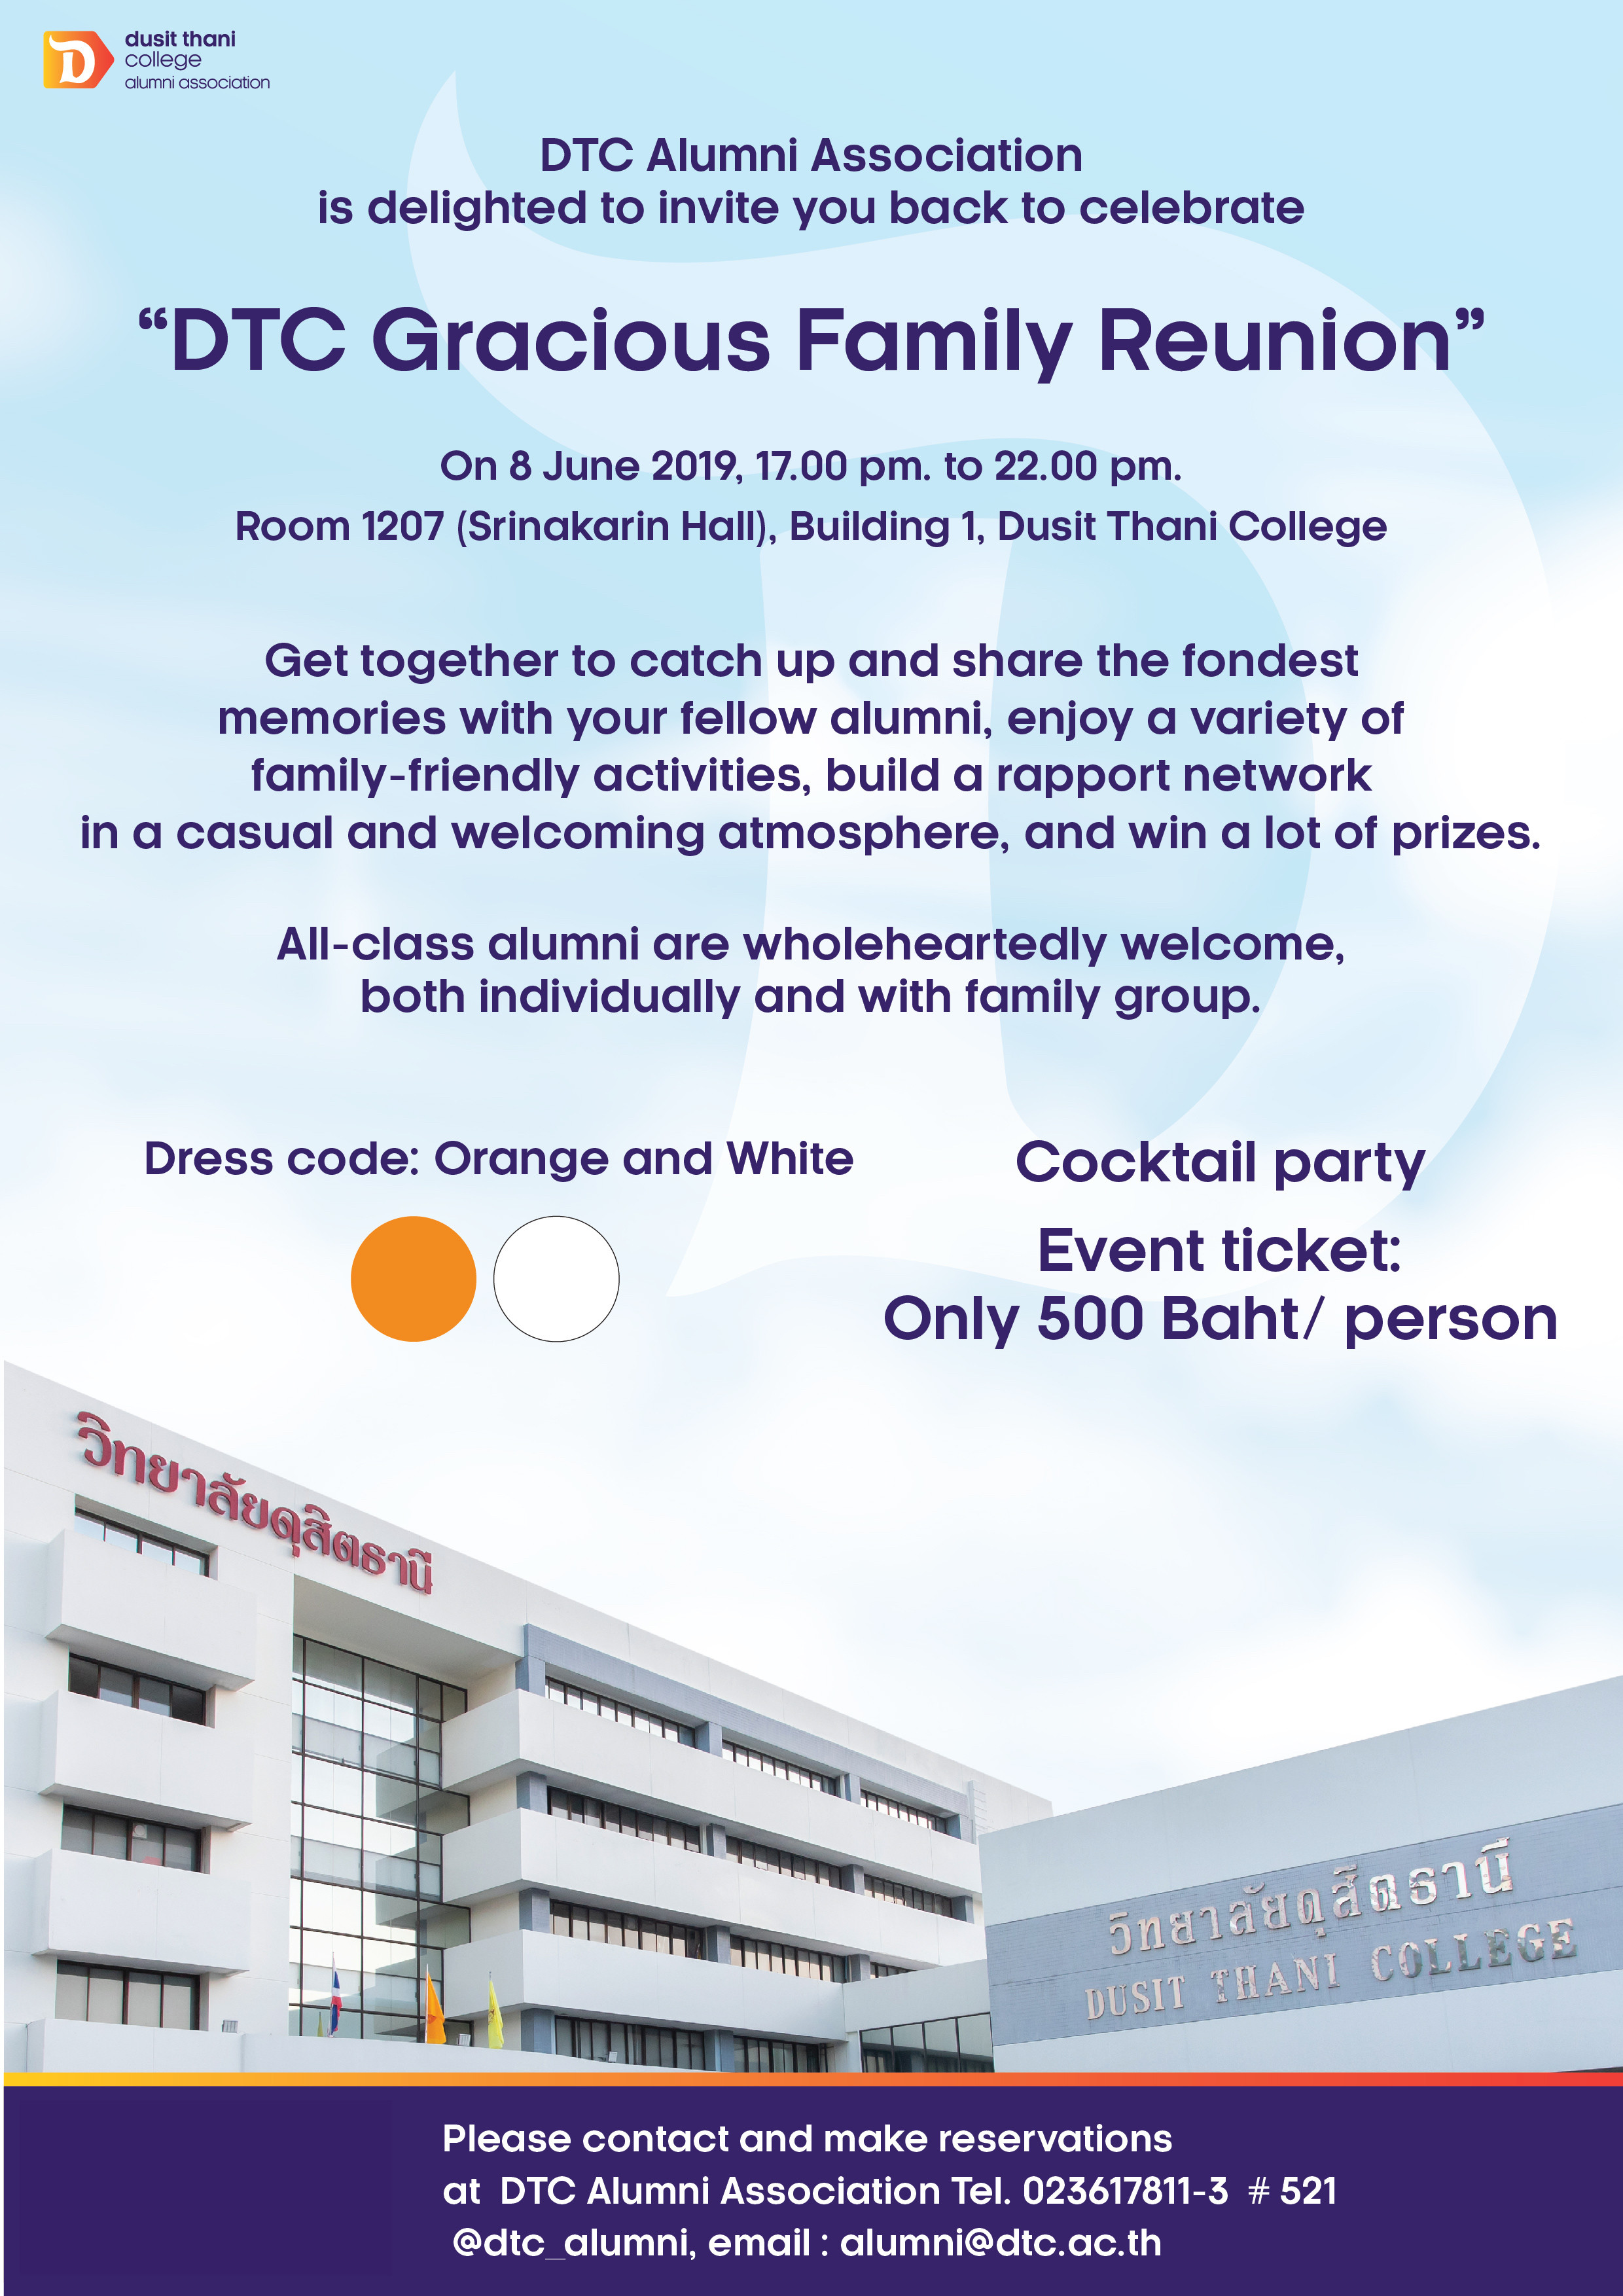 DTC Gracious Family Reunion - Dusit Thani College